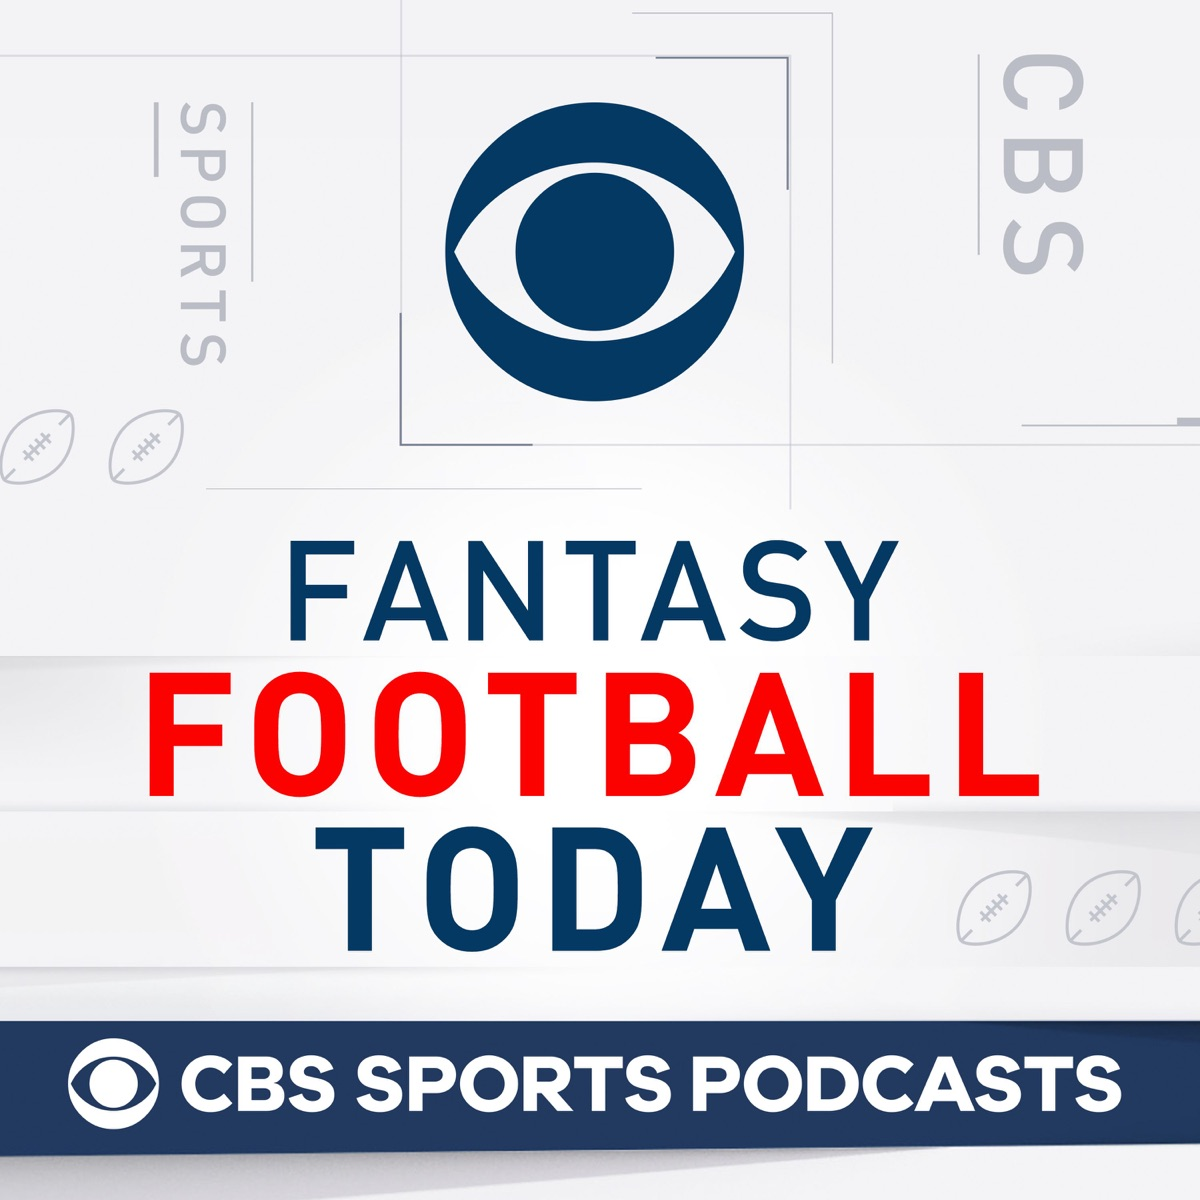 Barkley/McCaffrey Updates, QB Strategy, Buy Low RBs (09/21 Fantasy Football Podcast)